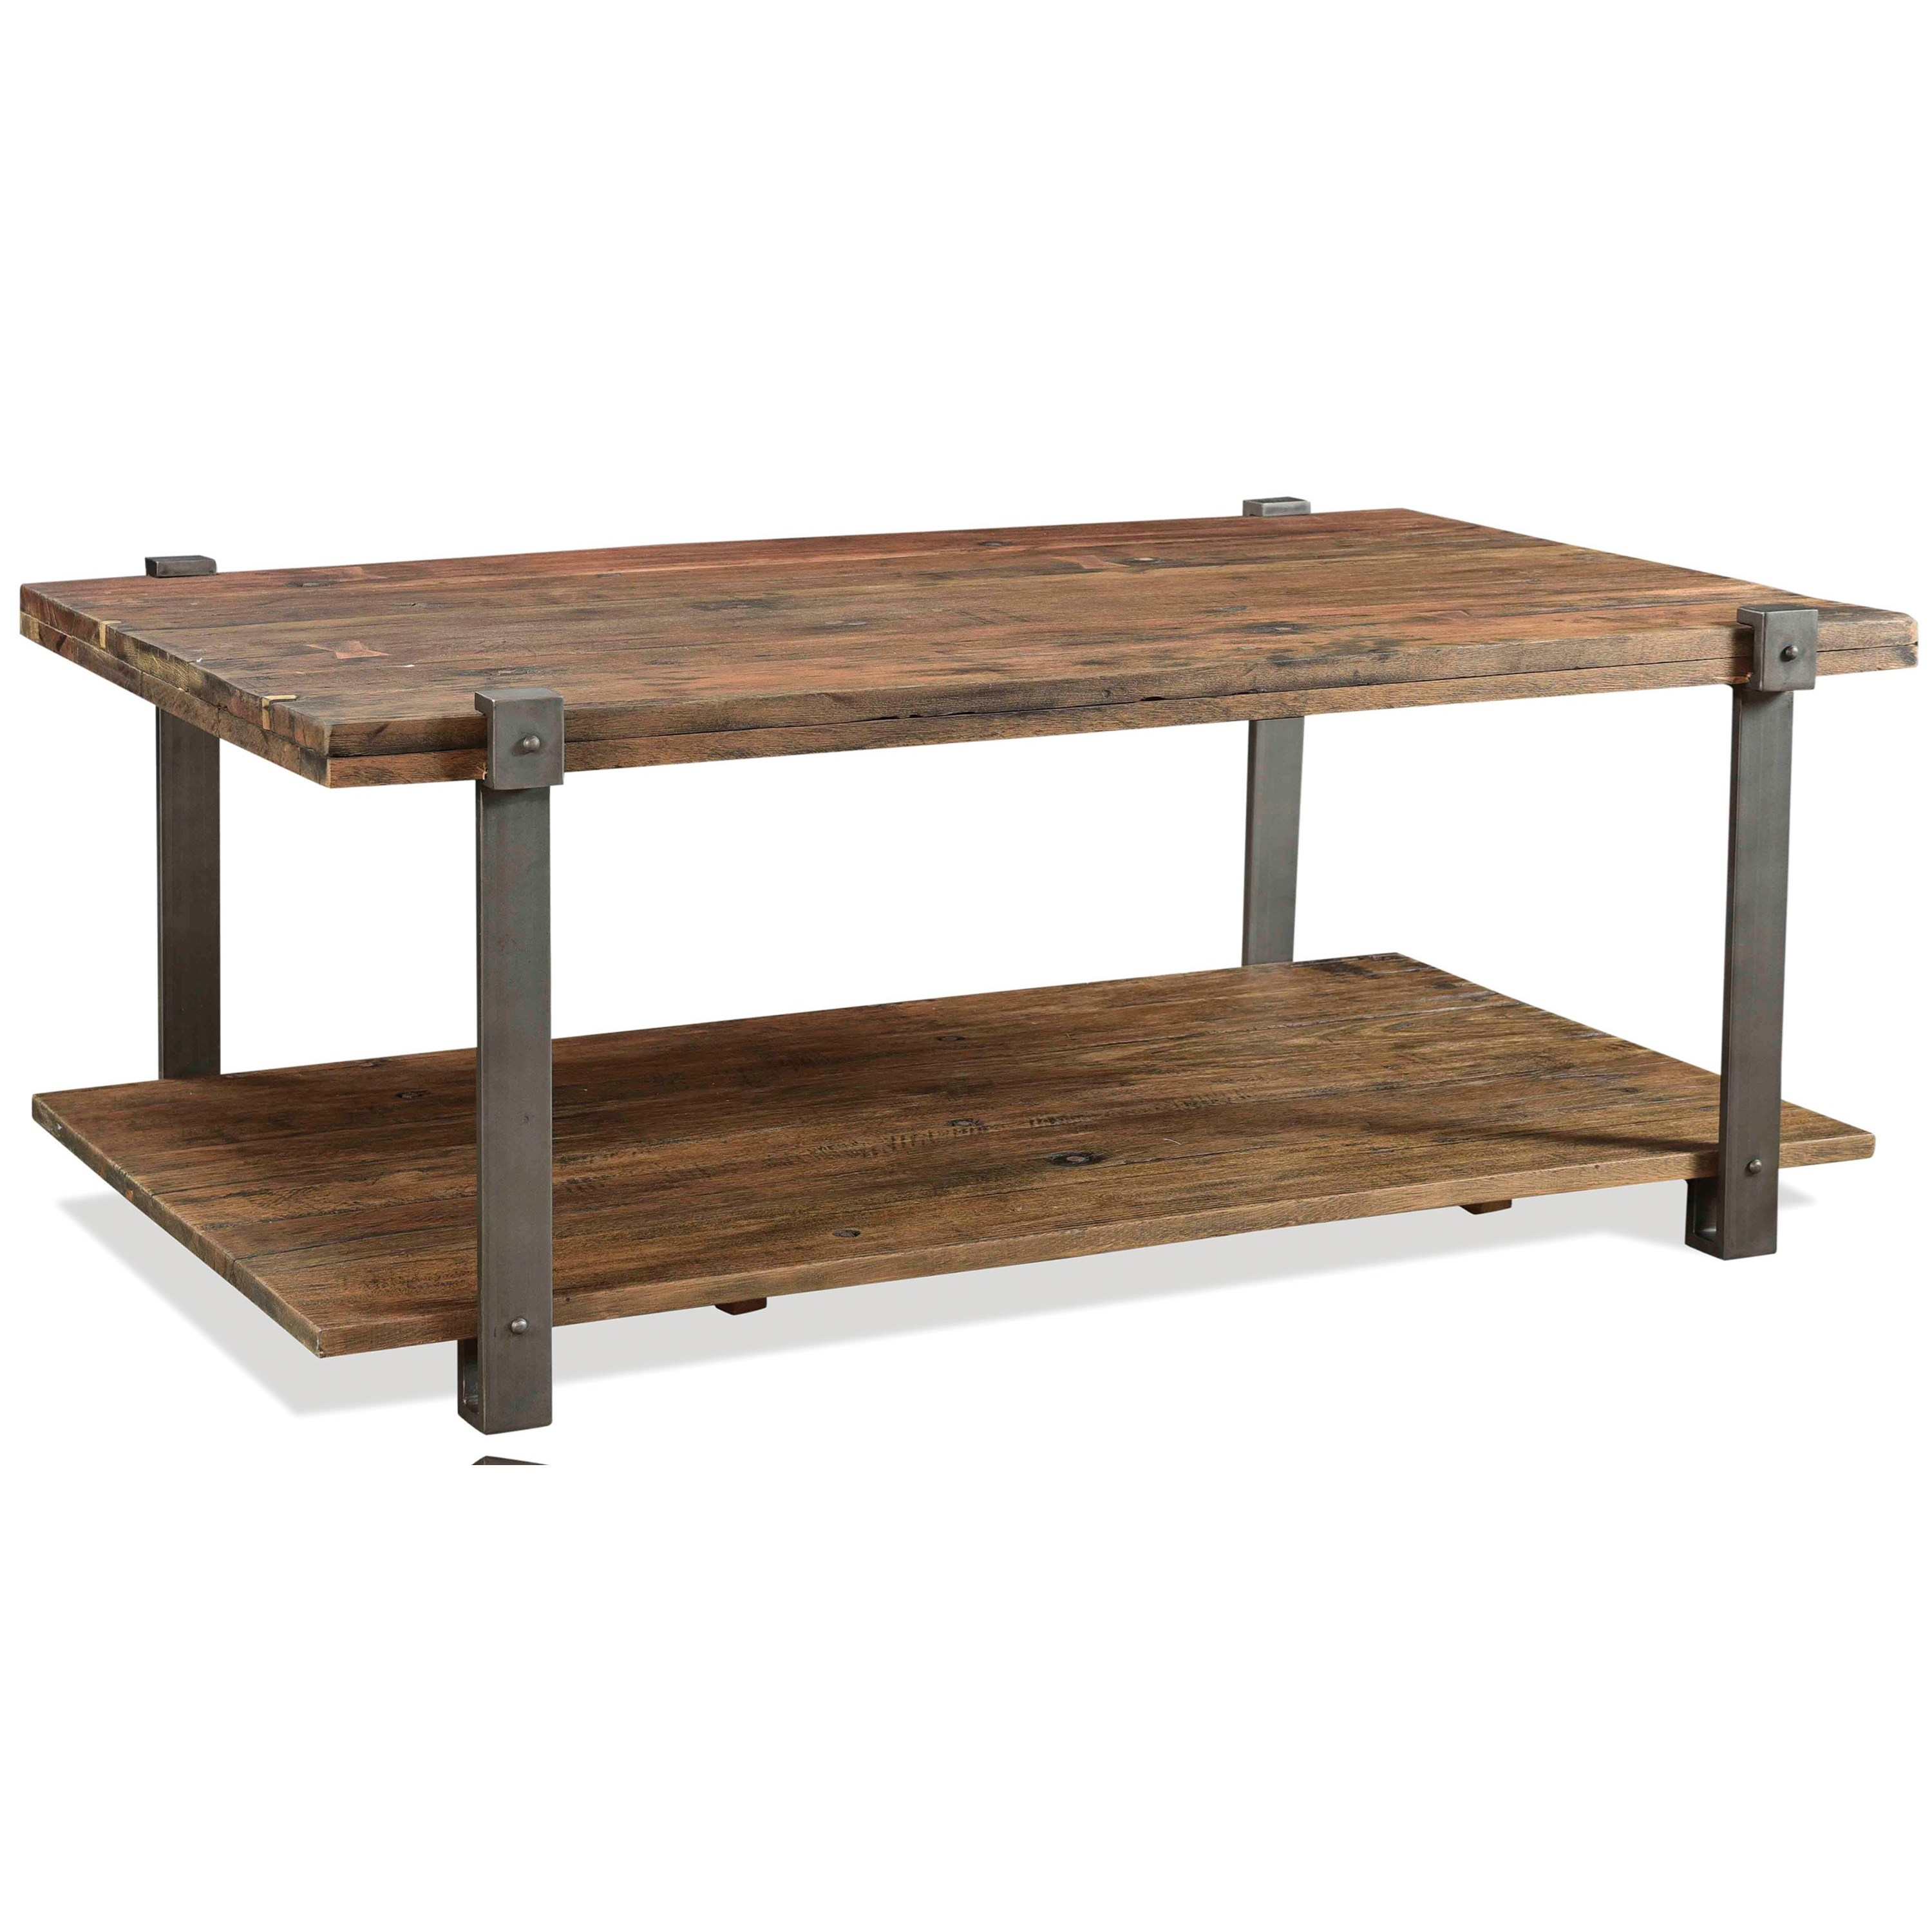 Quinton Rectangular Coffee Table by Riverside Furniture at Wilson's Furniture